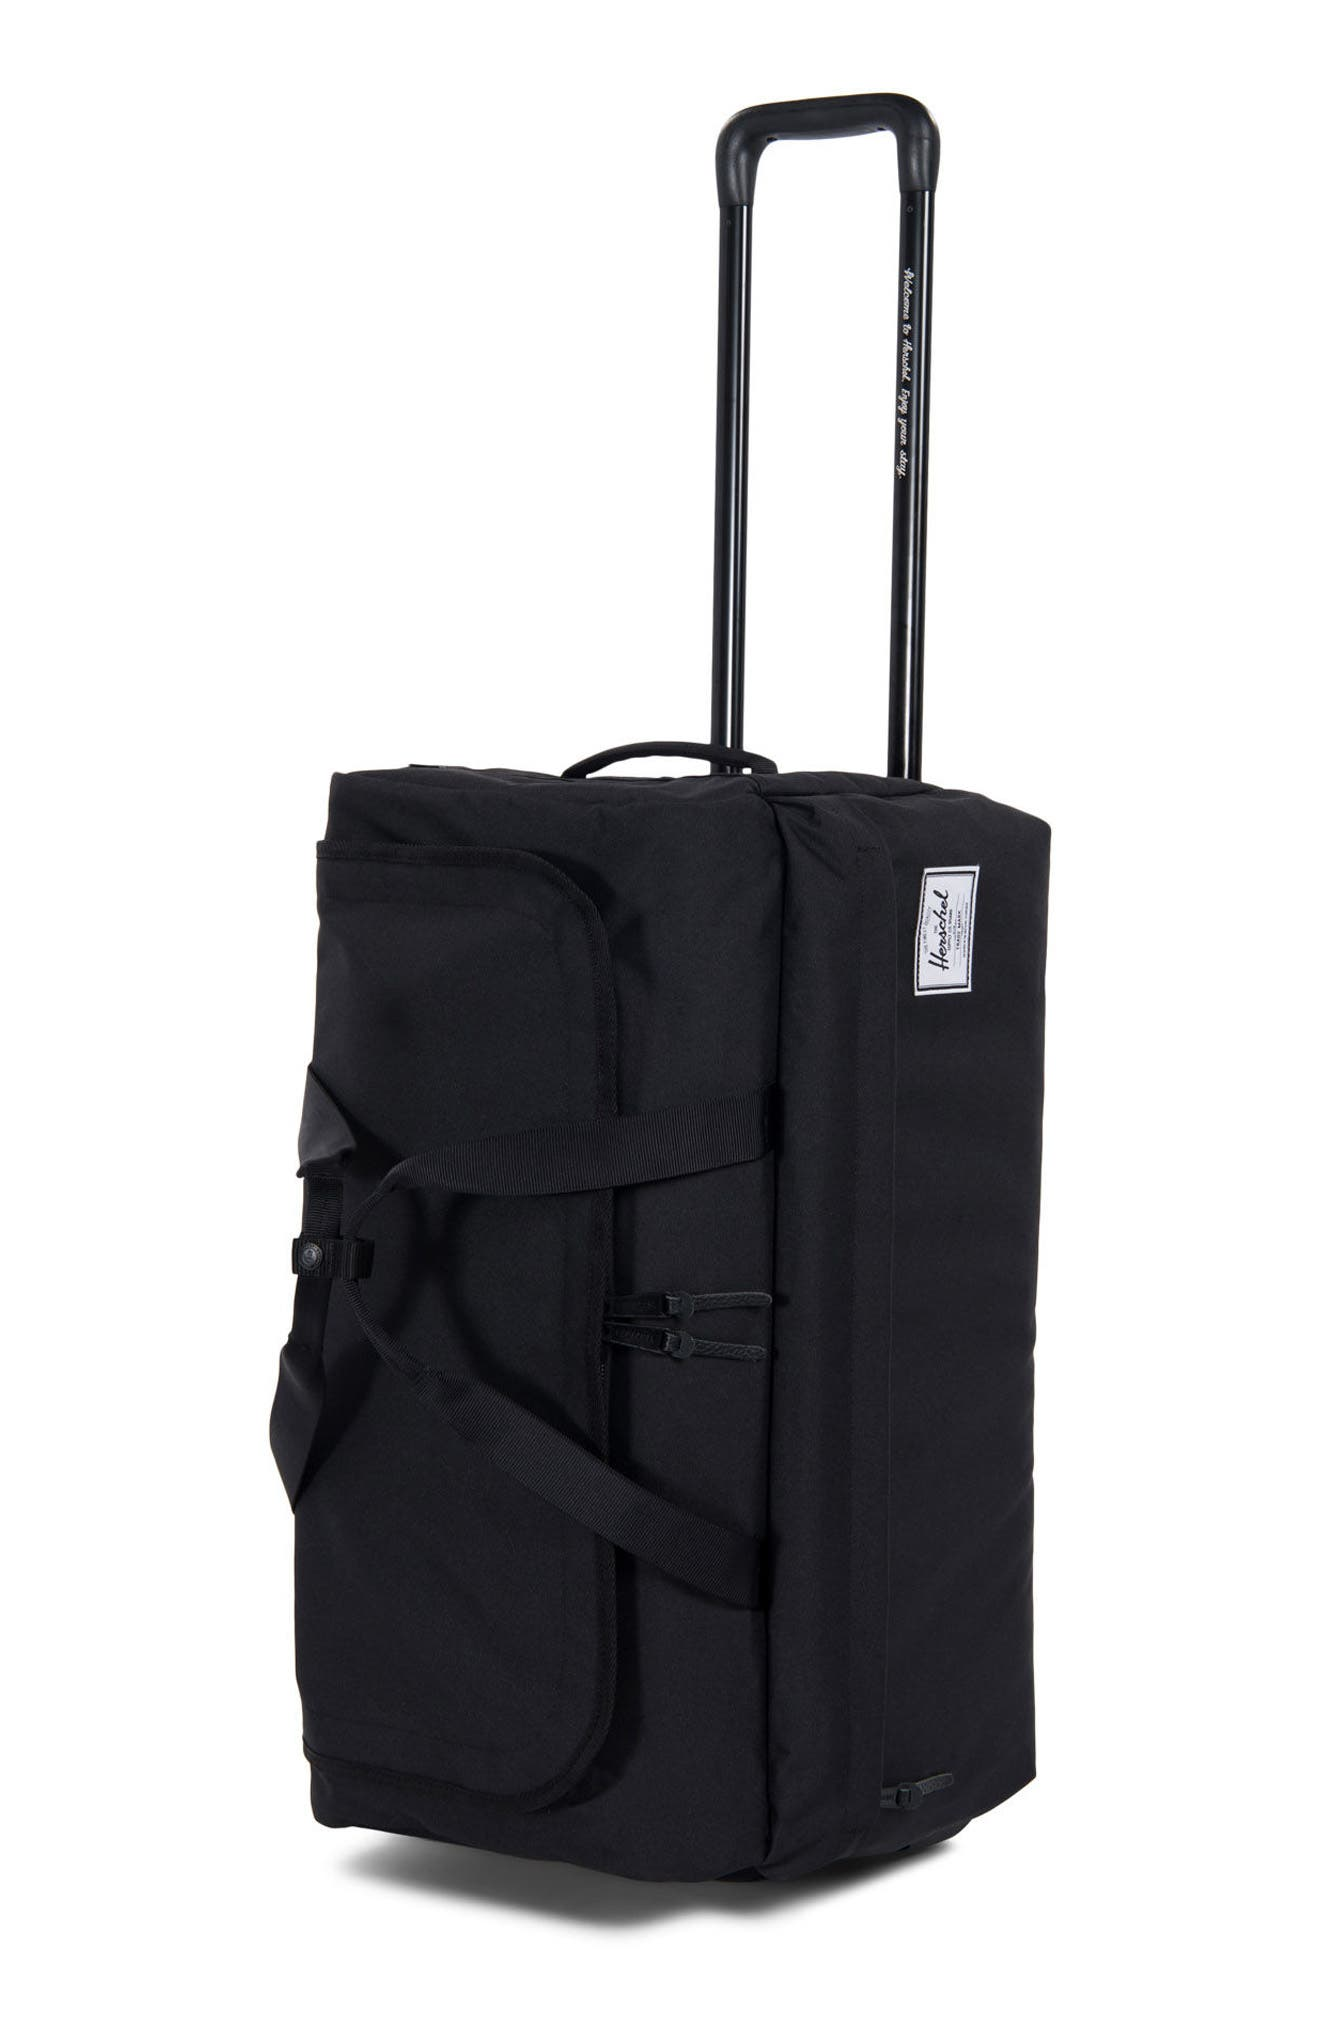 24-Inch Wheelie Rolling Carry-On,                         Main,                         color, BLACK